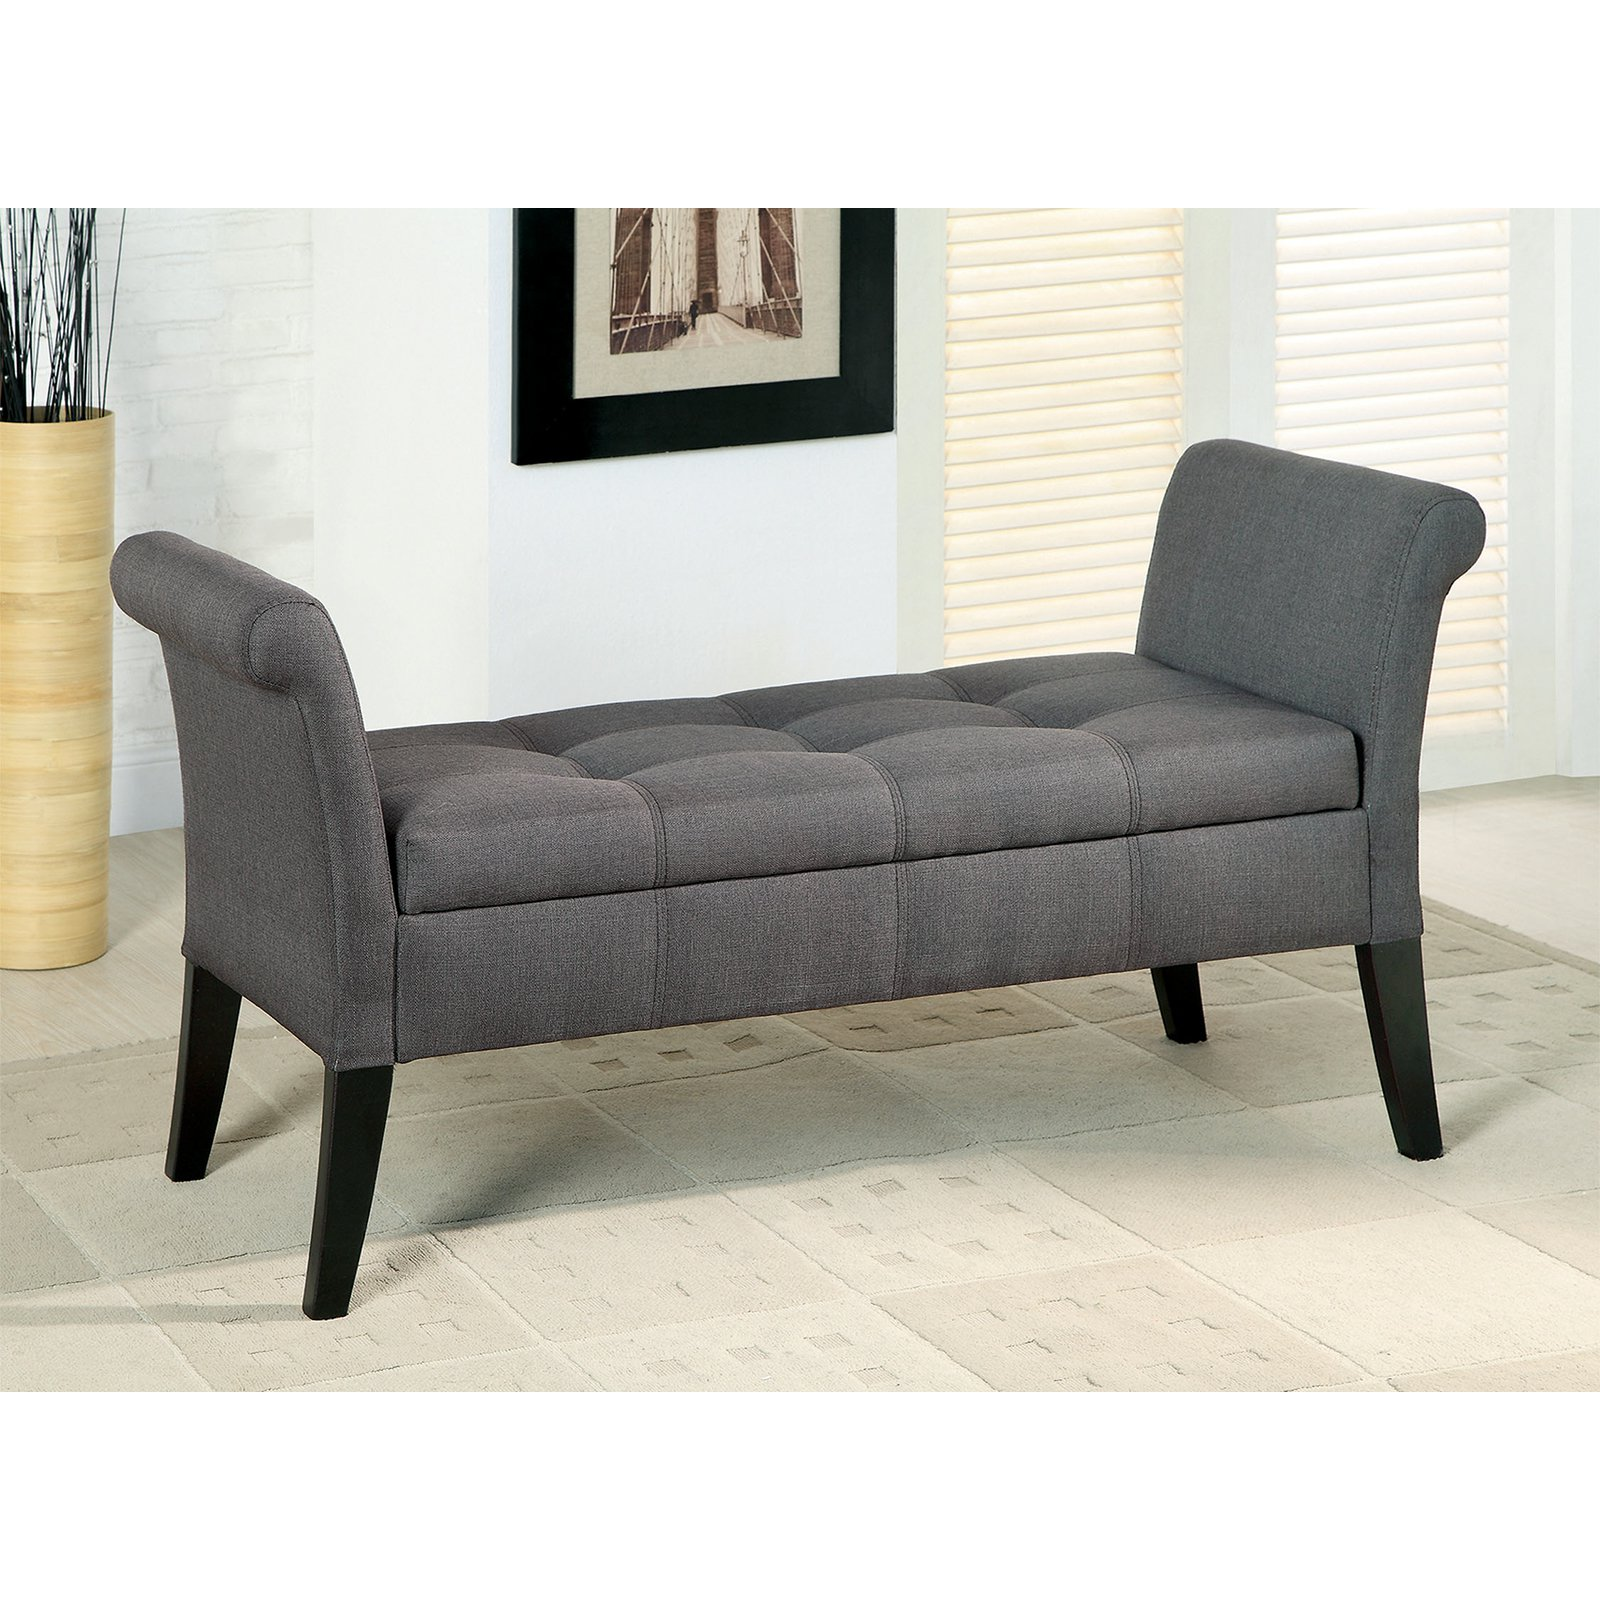 Superbe Furniture Of America Alistar Fabric Upholstered Storage Accent Bench    Walmart.com